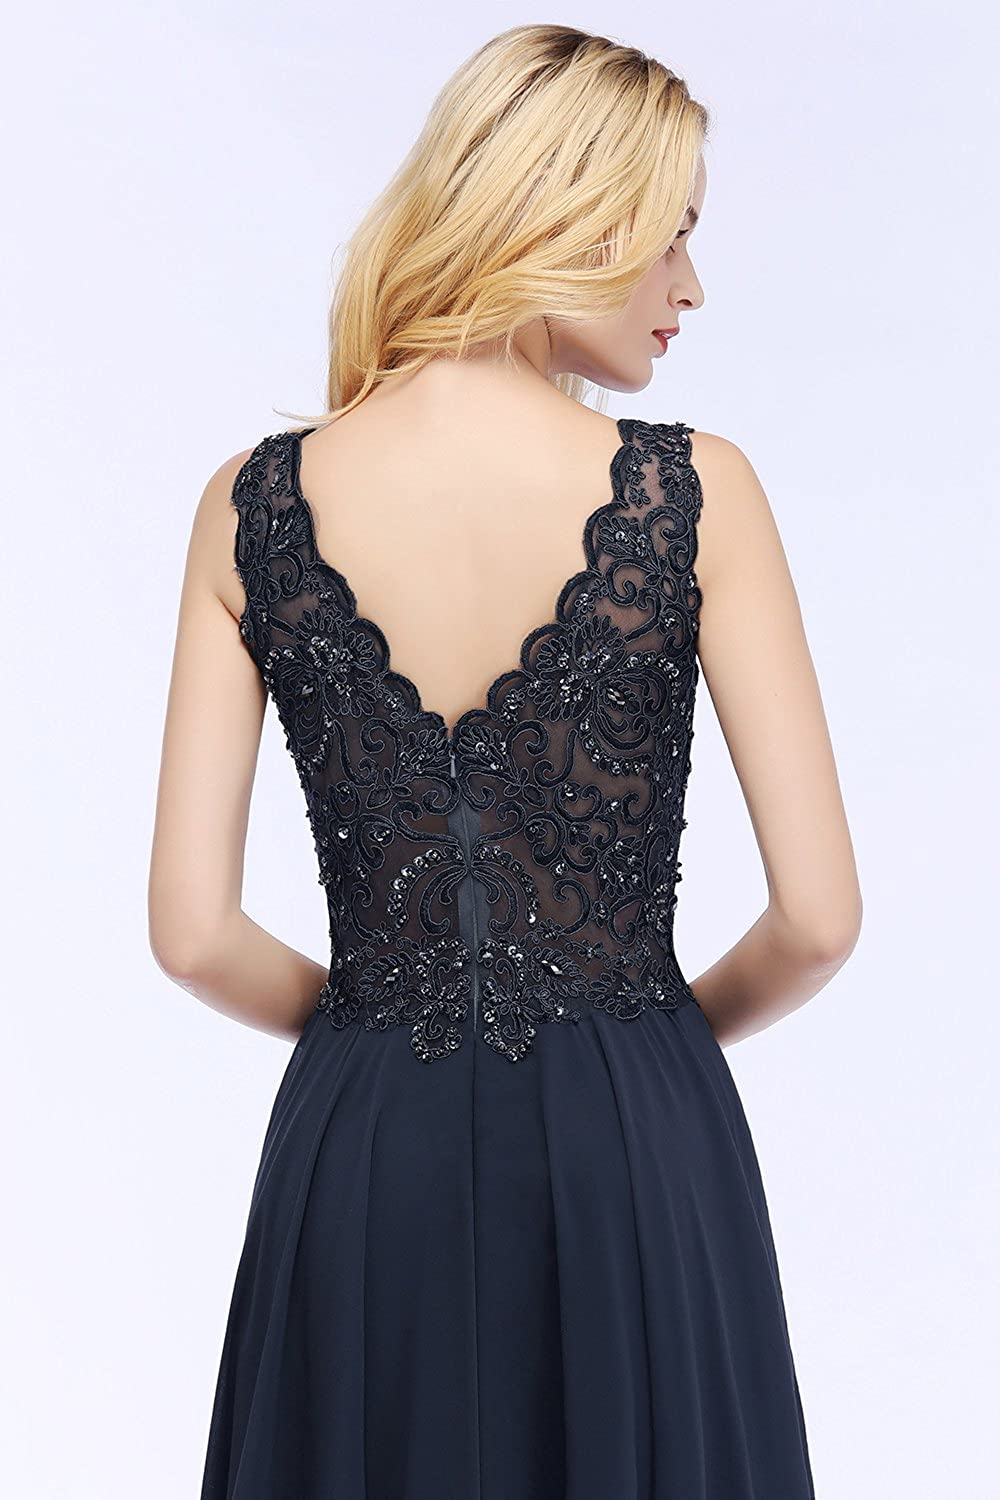 Womens Lace Applique Beads Chiffion Long Formal Evening Dress Prom Gown